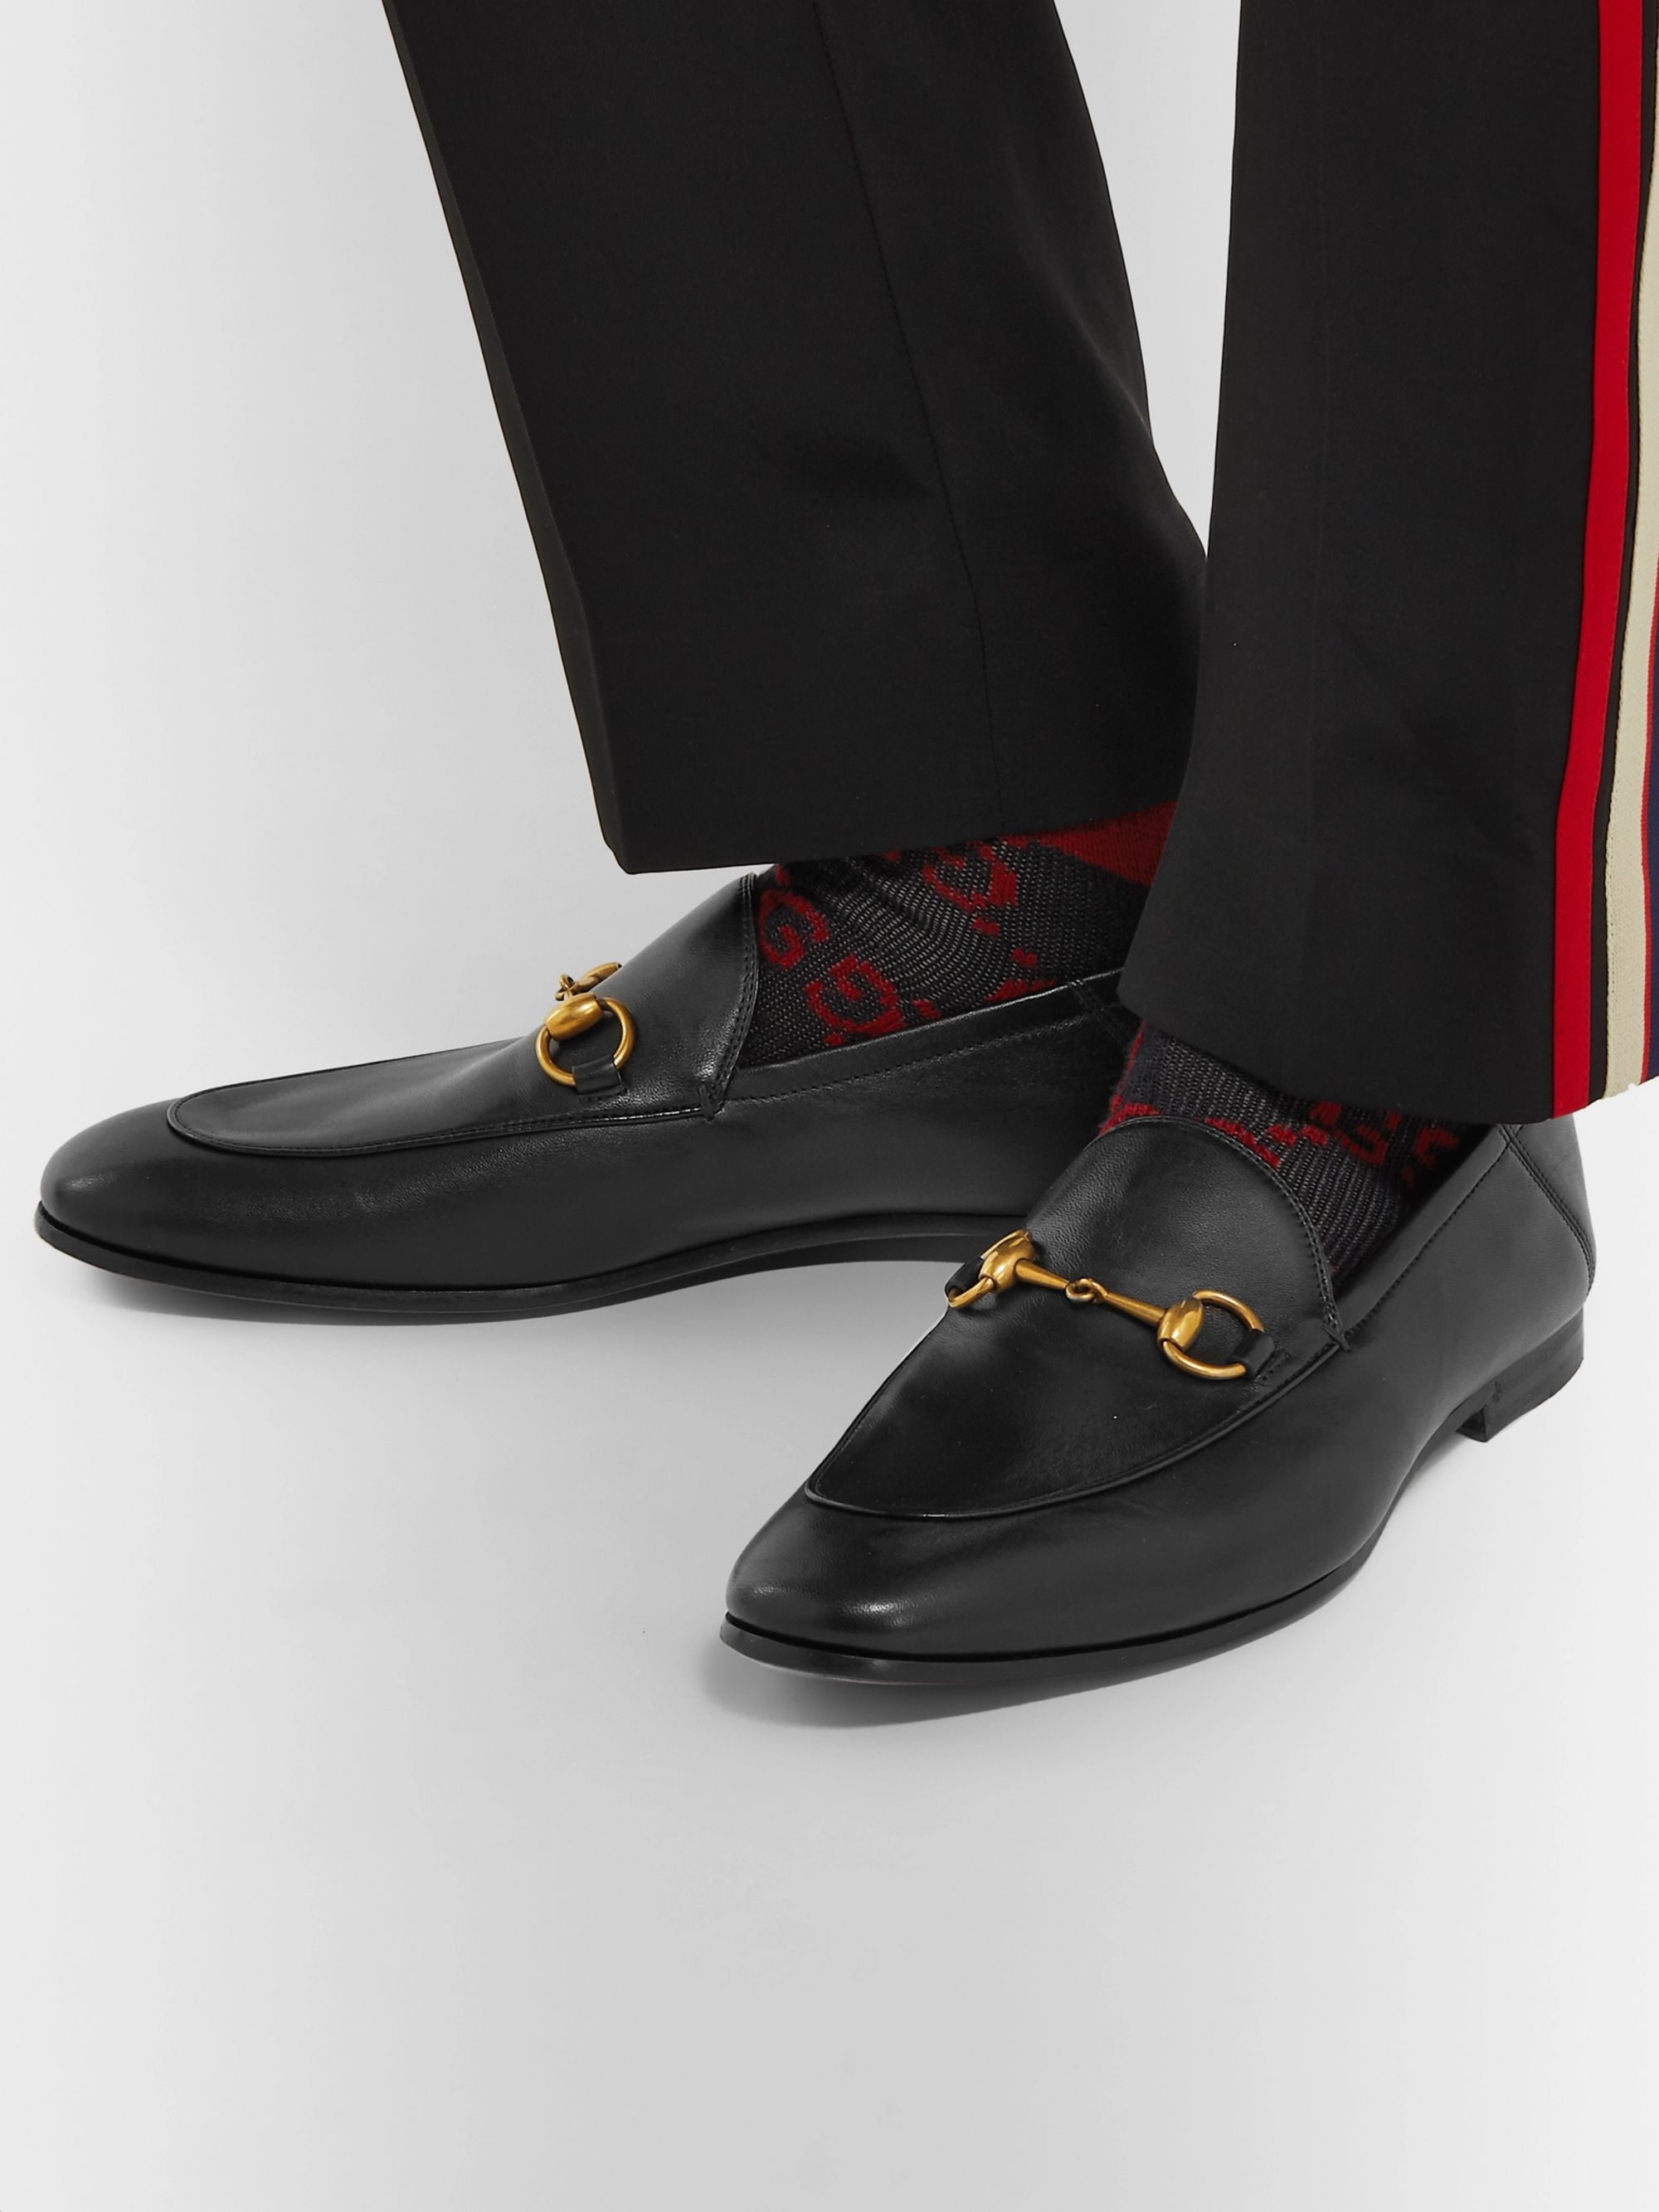 Gucci Brixton Horsebit Collapsible-Heel Leather Loafers